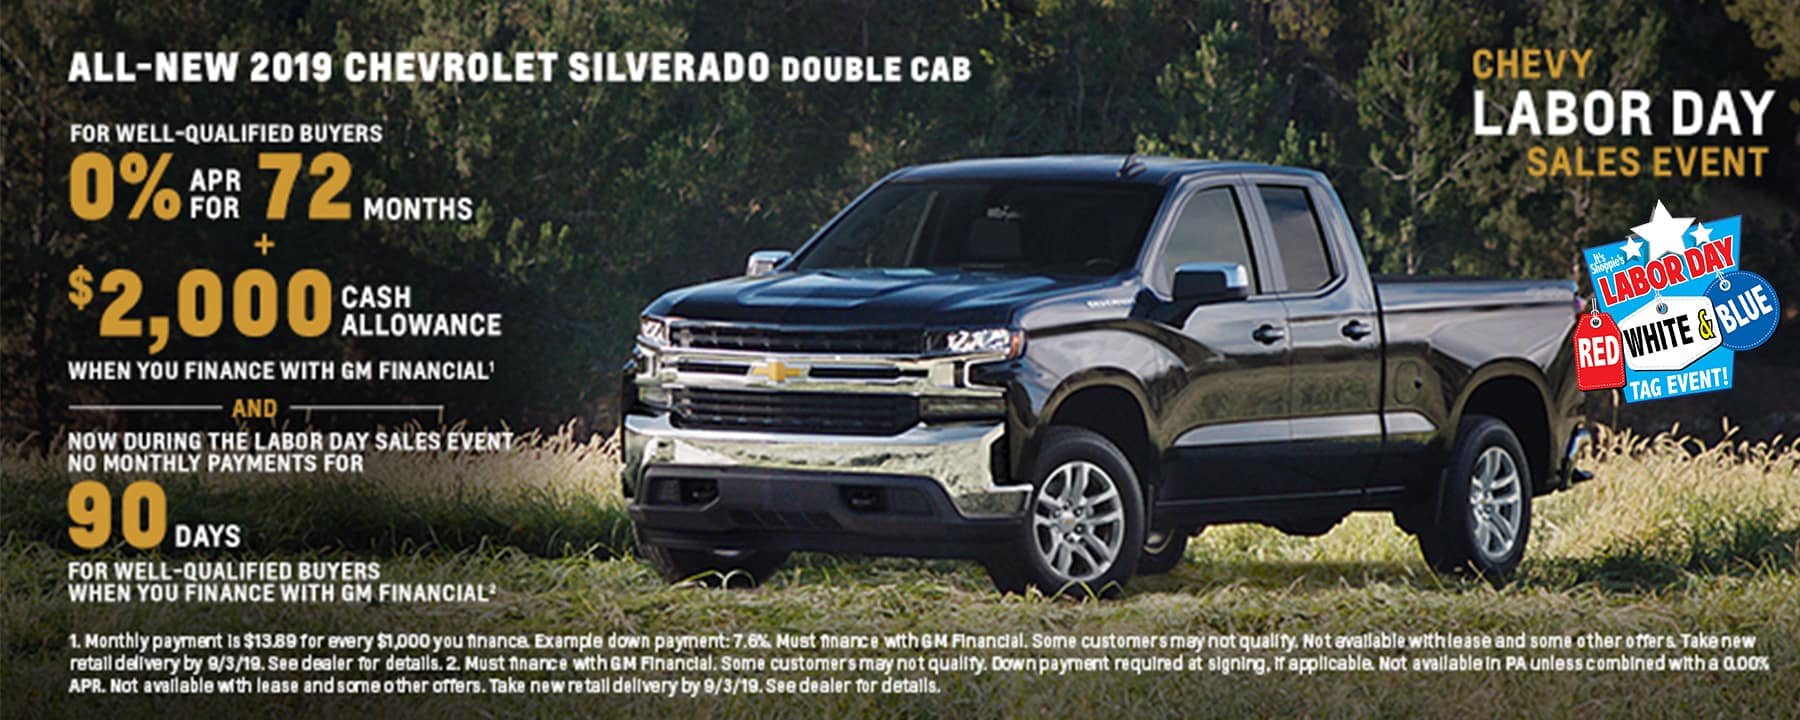 Chevrolet Of Homewood New Used Car Dealer Auto Service And Gm Parts